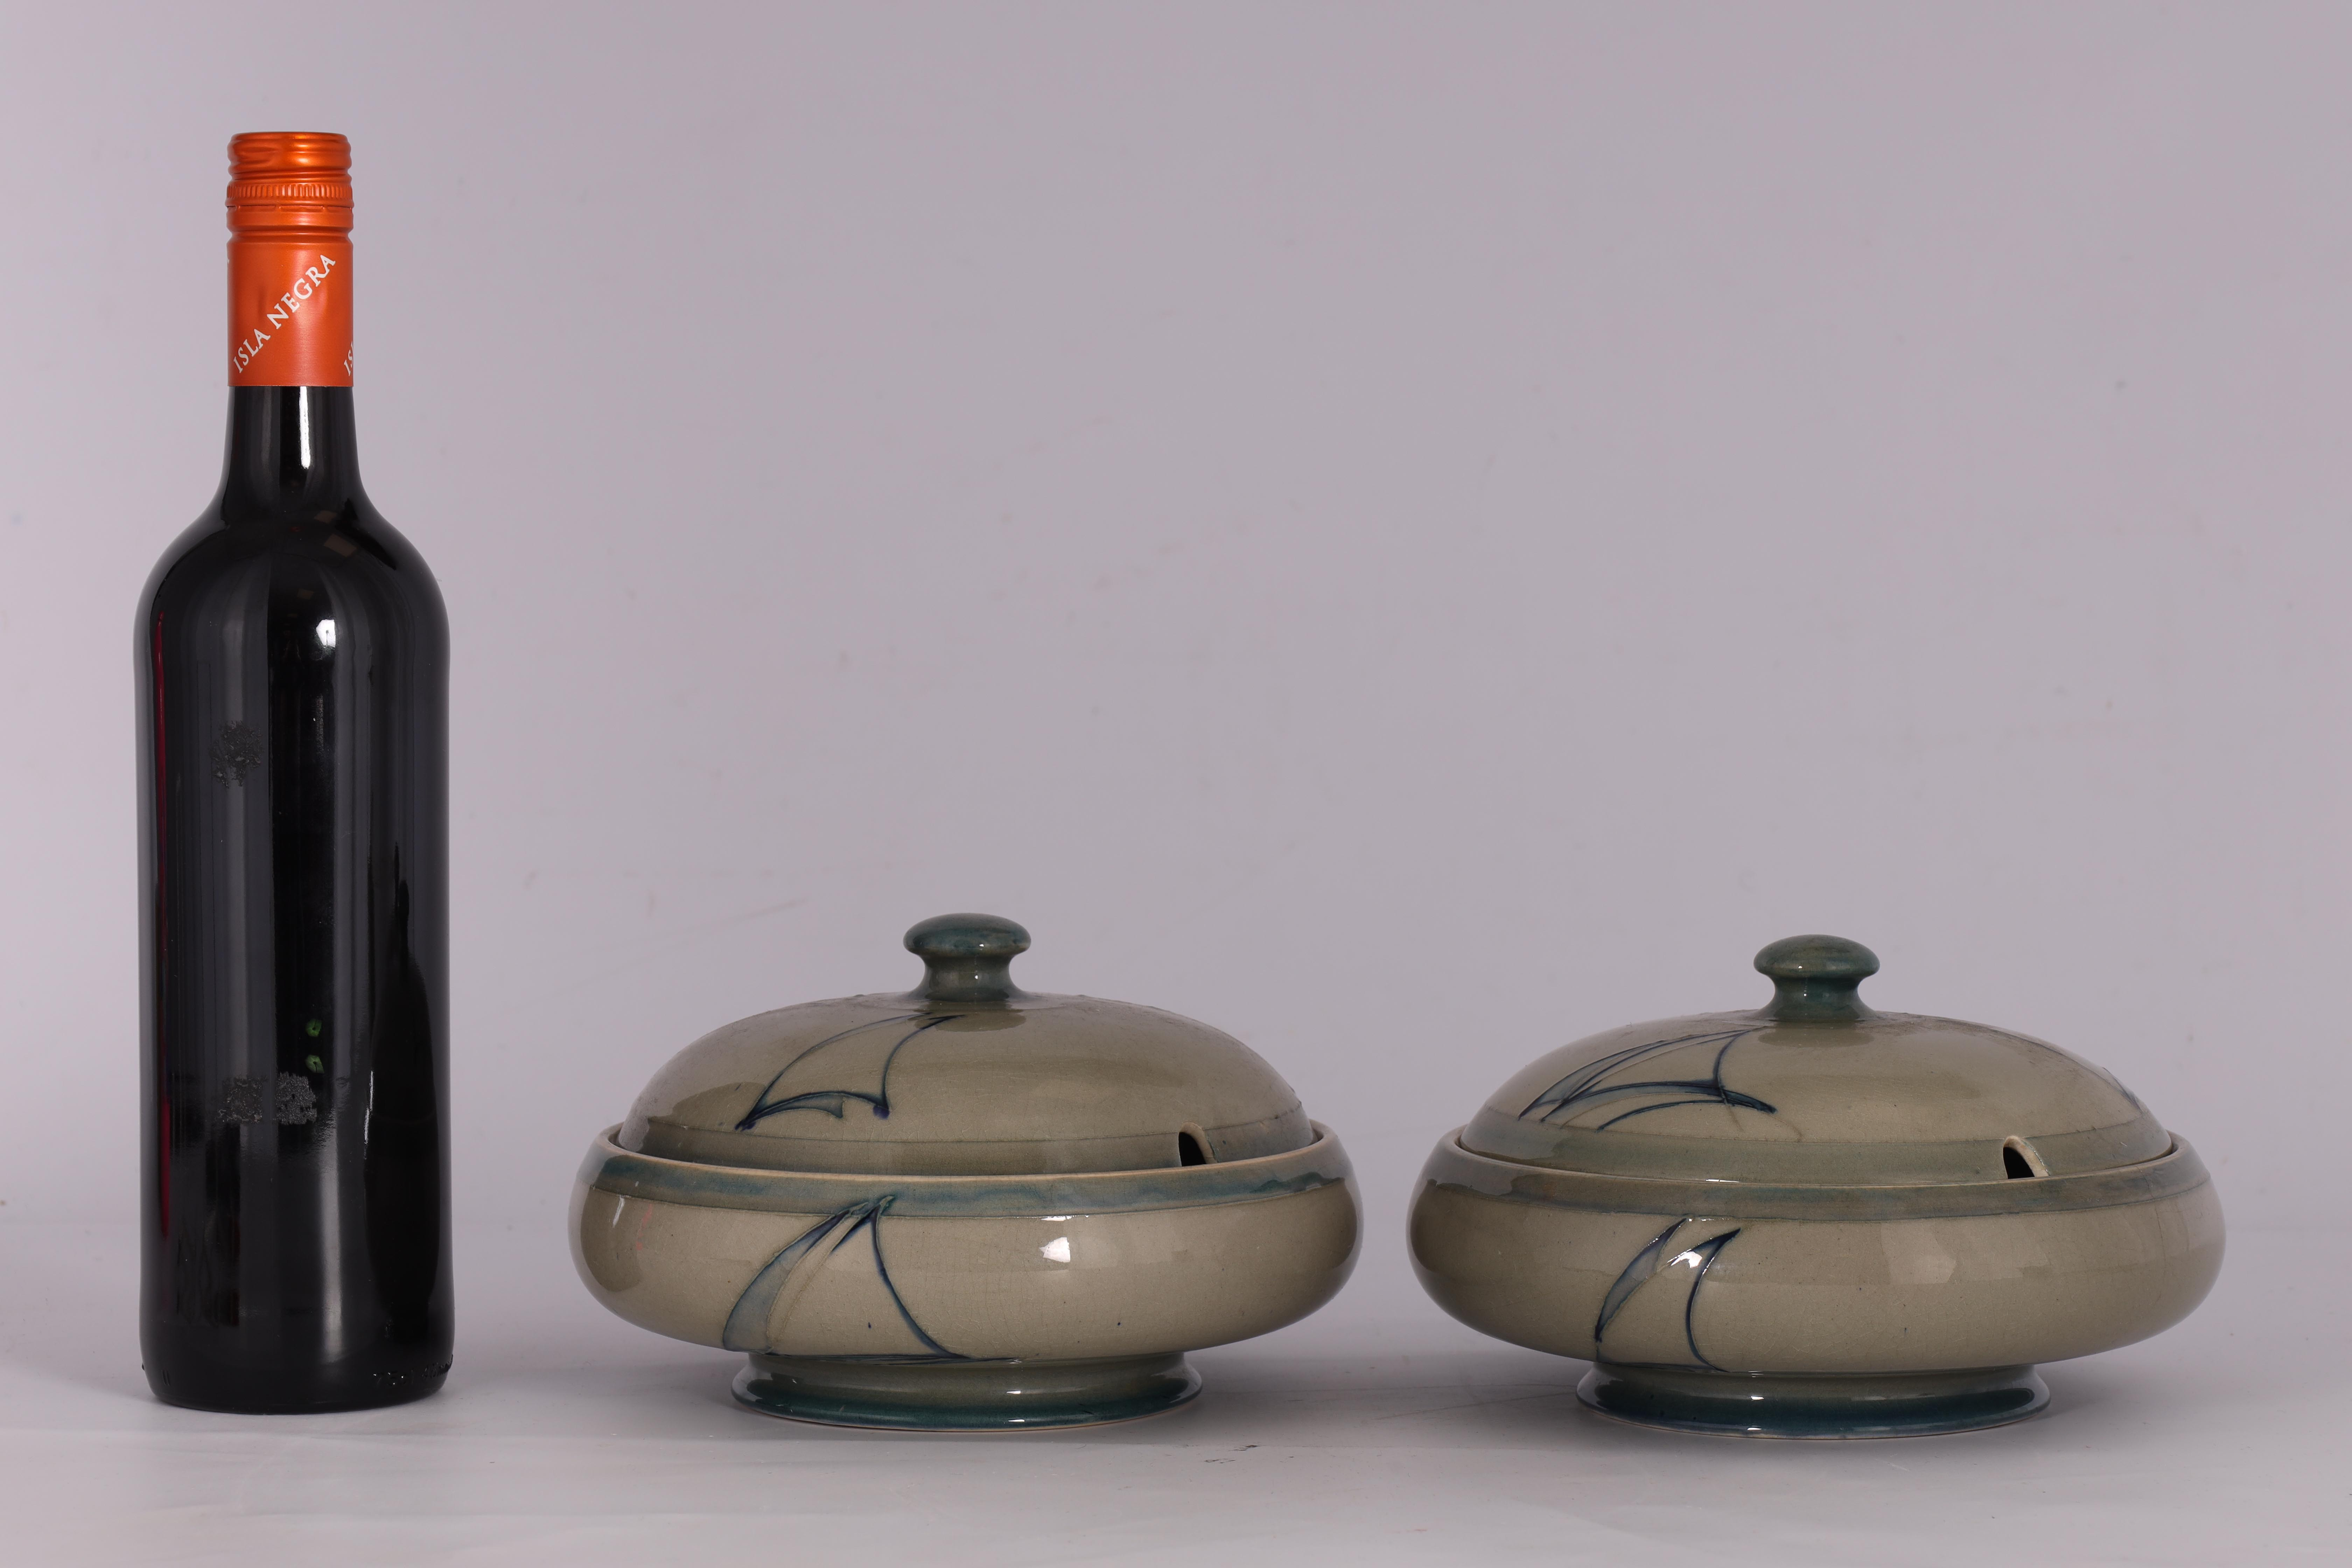 A PAIR OF MOORCROFT LIDDED TABLE TUREENS decorated in the Yacht pattern on a celadon ground, 19. - Image 4 of 12